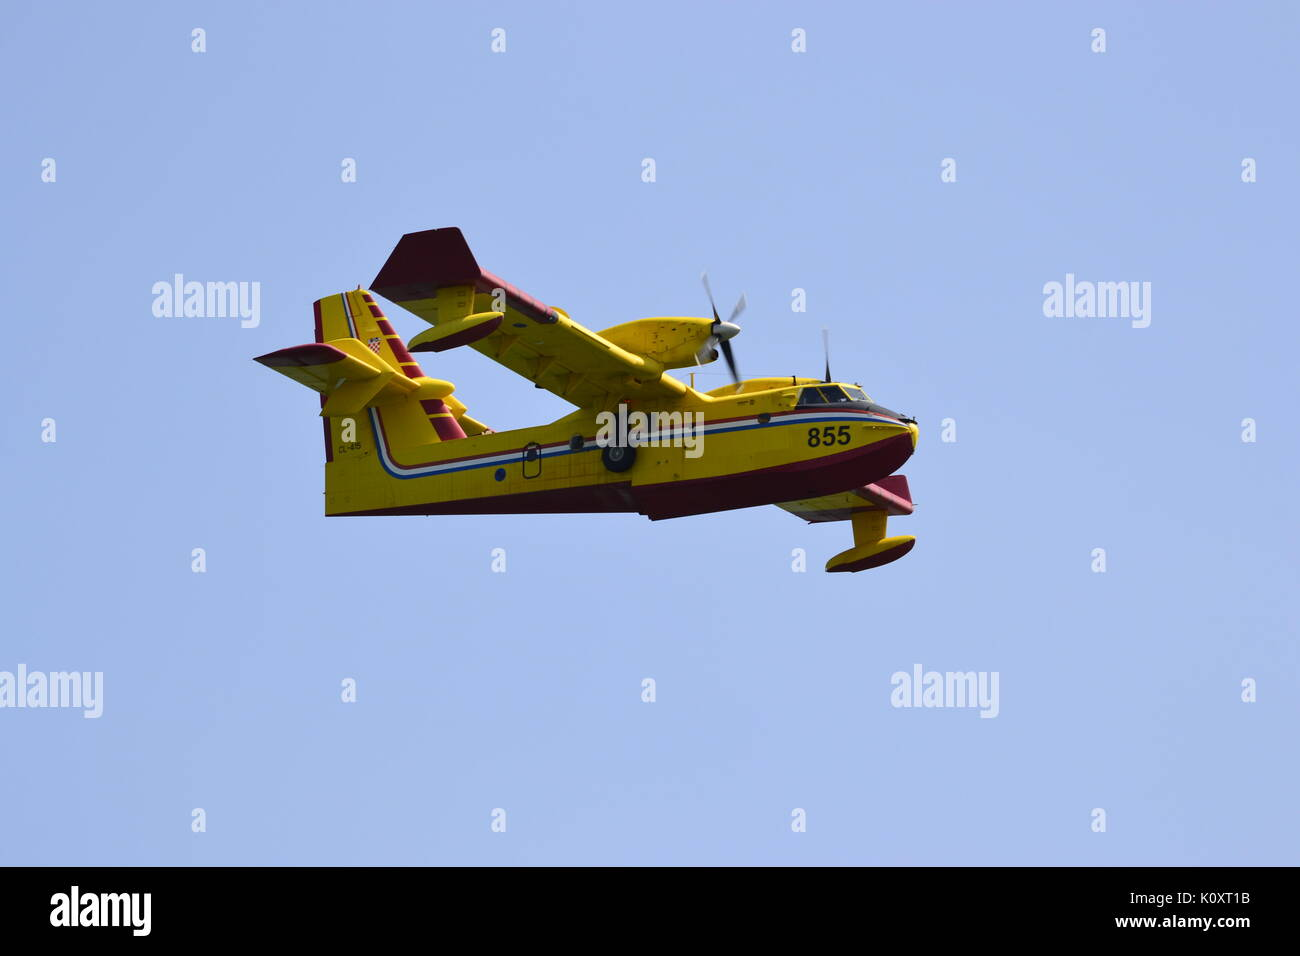 Amphibious firefighting aircraft Canadair CL-415 (Bombardier 415) - Stock Image